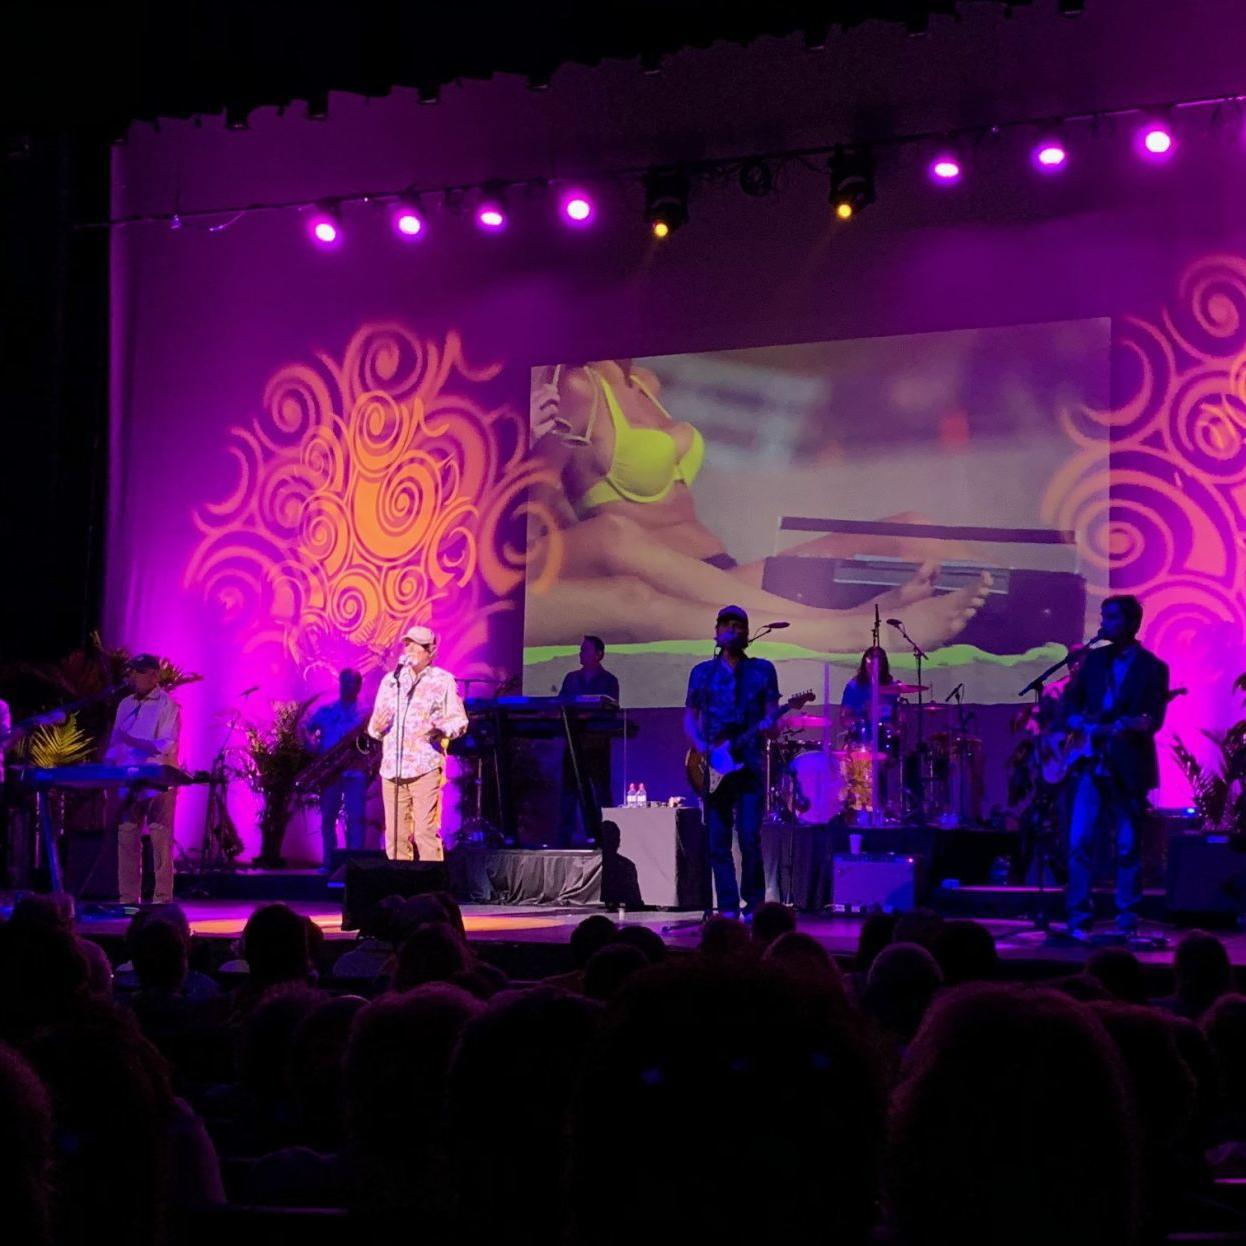 REVIEW: In Sioux City show, the Beach Boys rekindle past